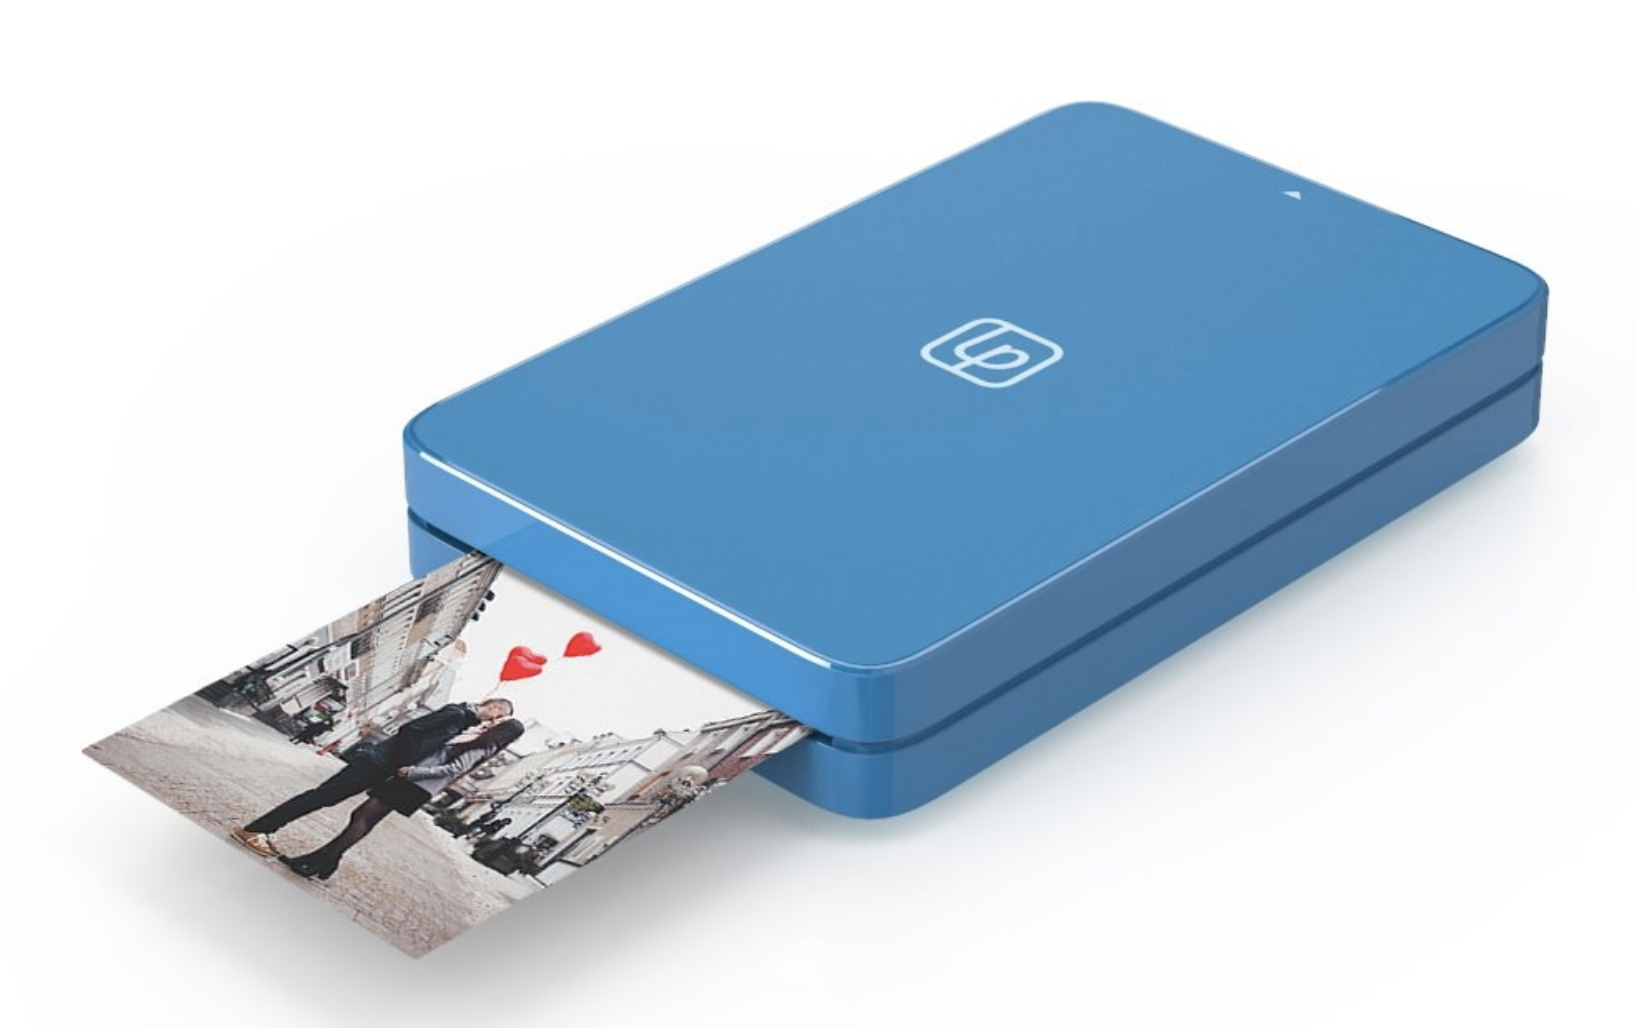 Lifeprint 2x3 Portable Photo and Video Printer